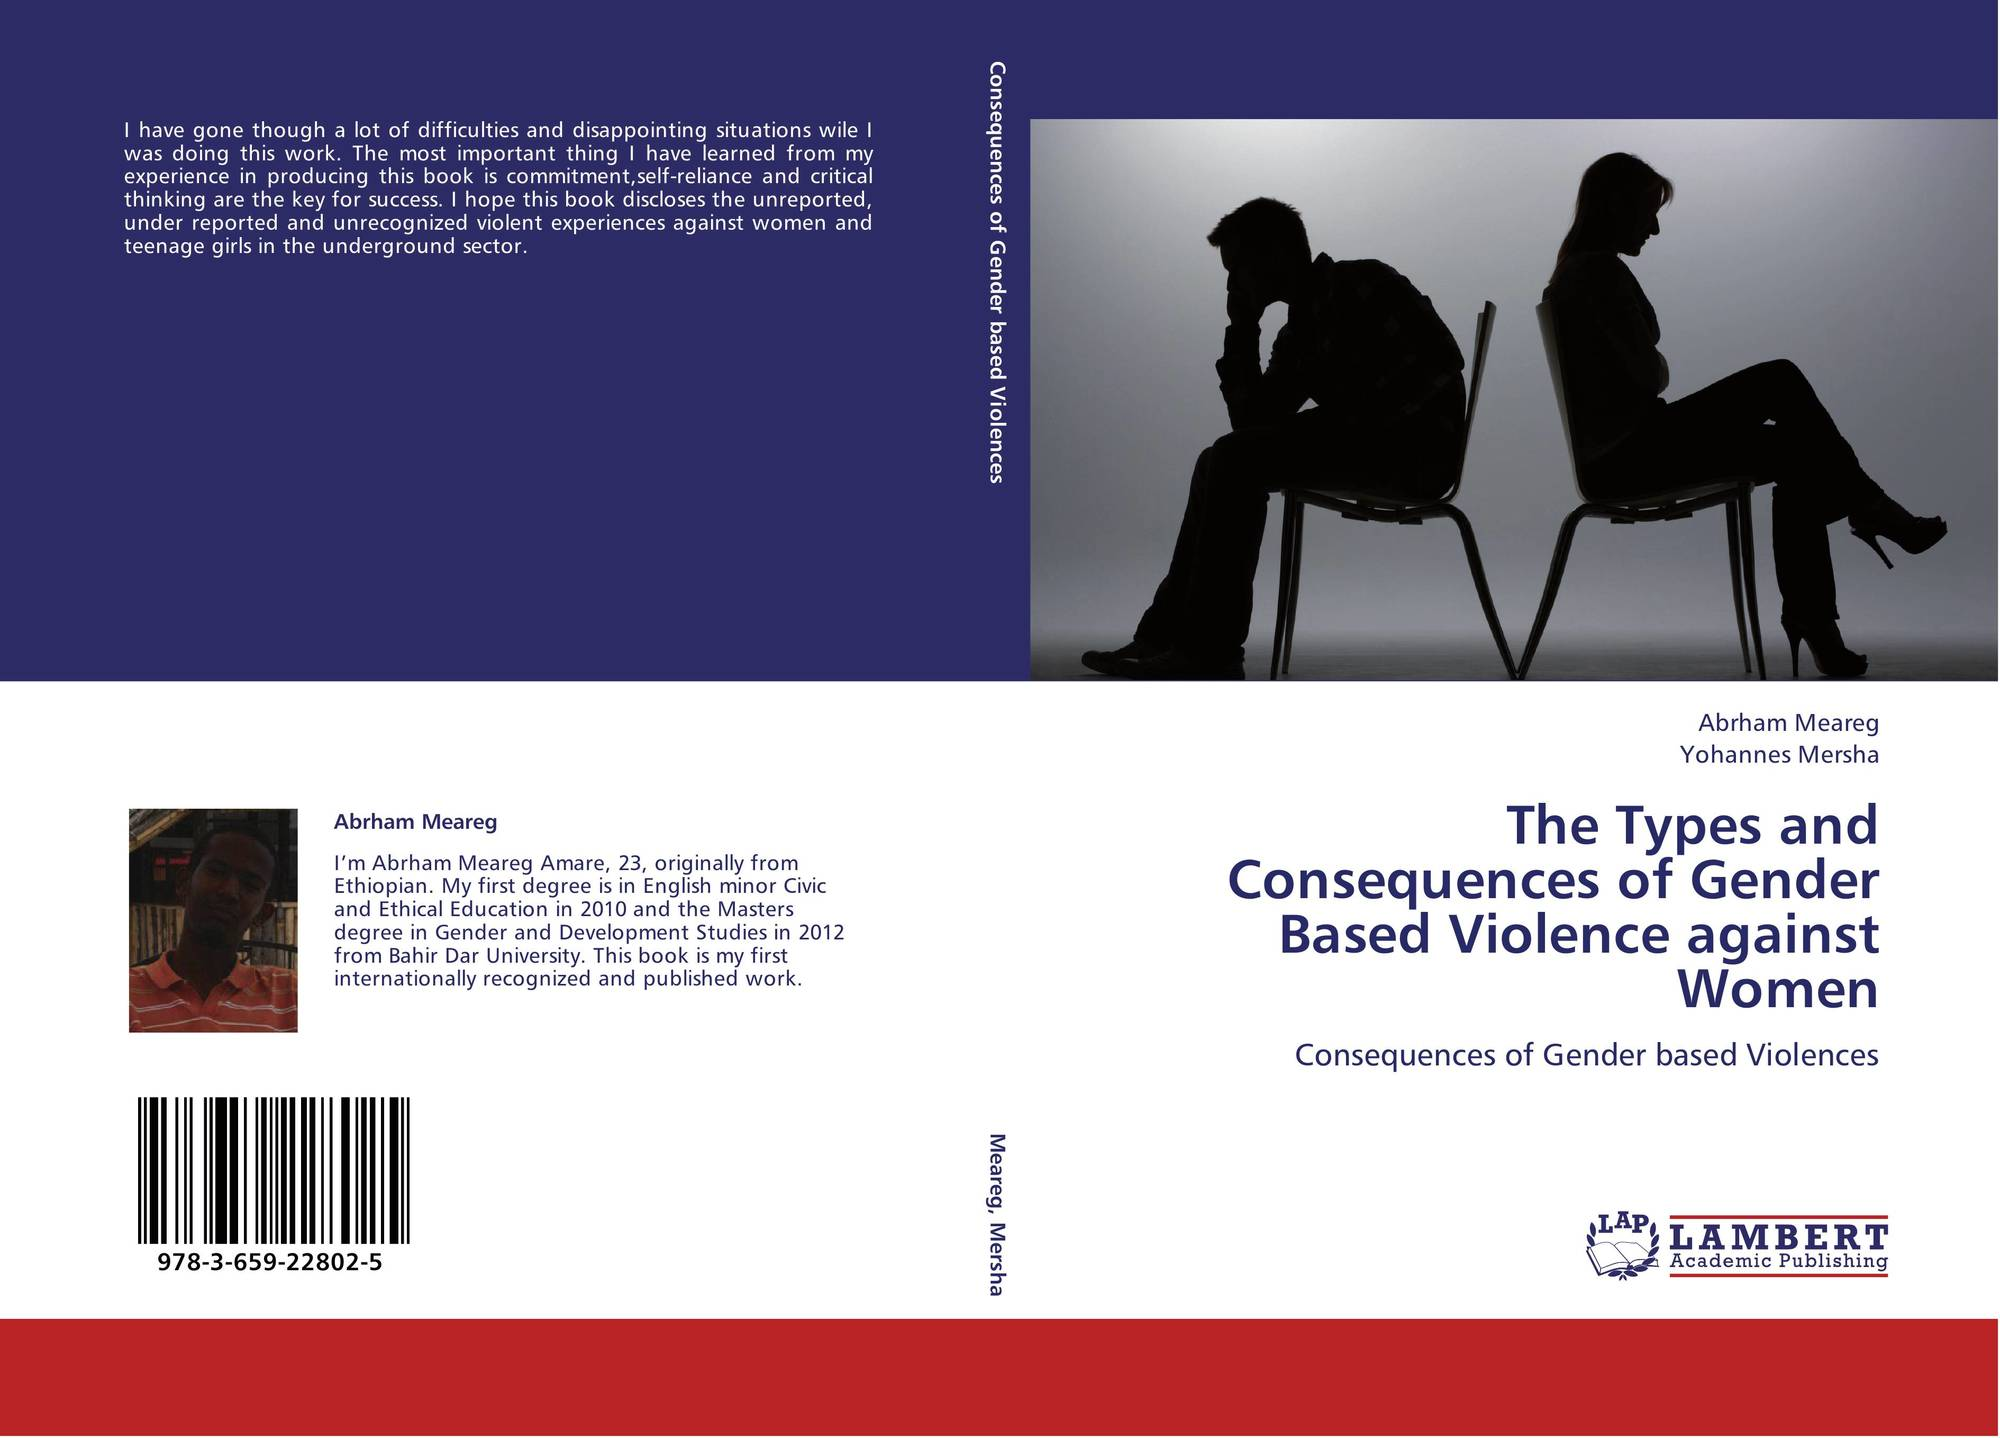 an analysis of the violence affecting the peoples lives For example, violent people may be more likely than nonviolent people to select or encounter social situations and subcultures that encourage heavy drinking (21) in summary, violence may contribute to alcohol consumption, which in turn may perpetuate violence.